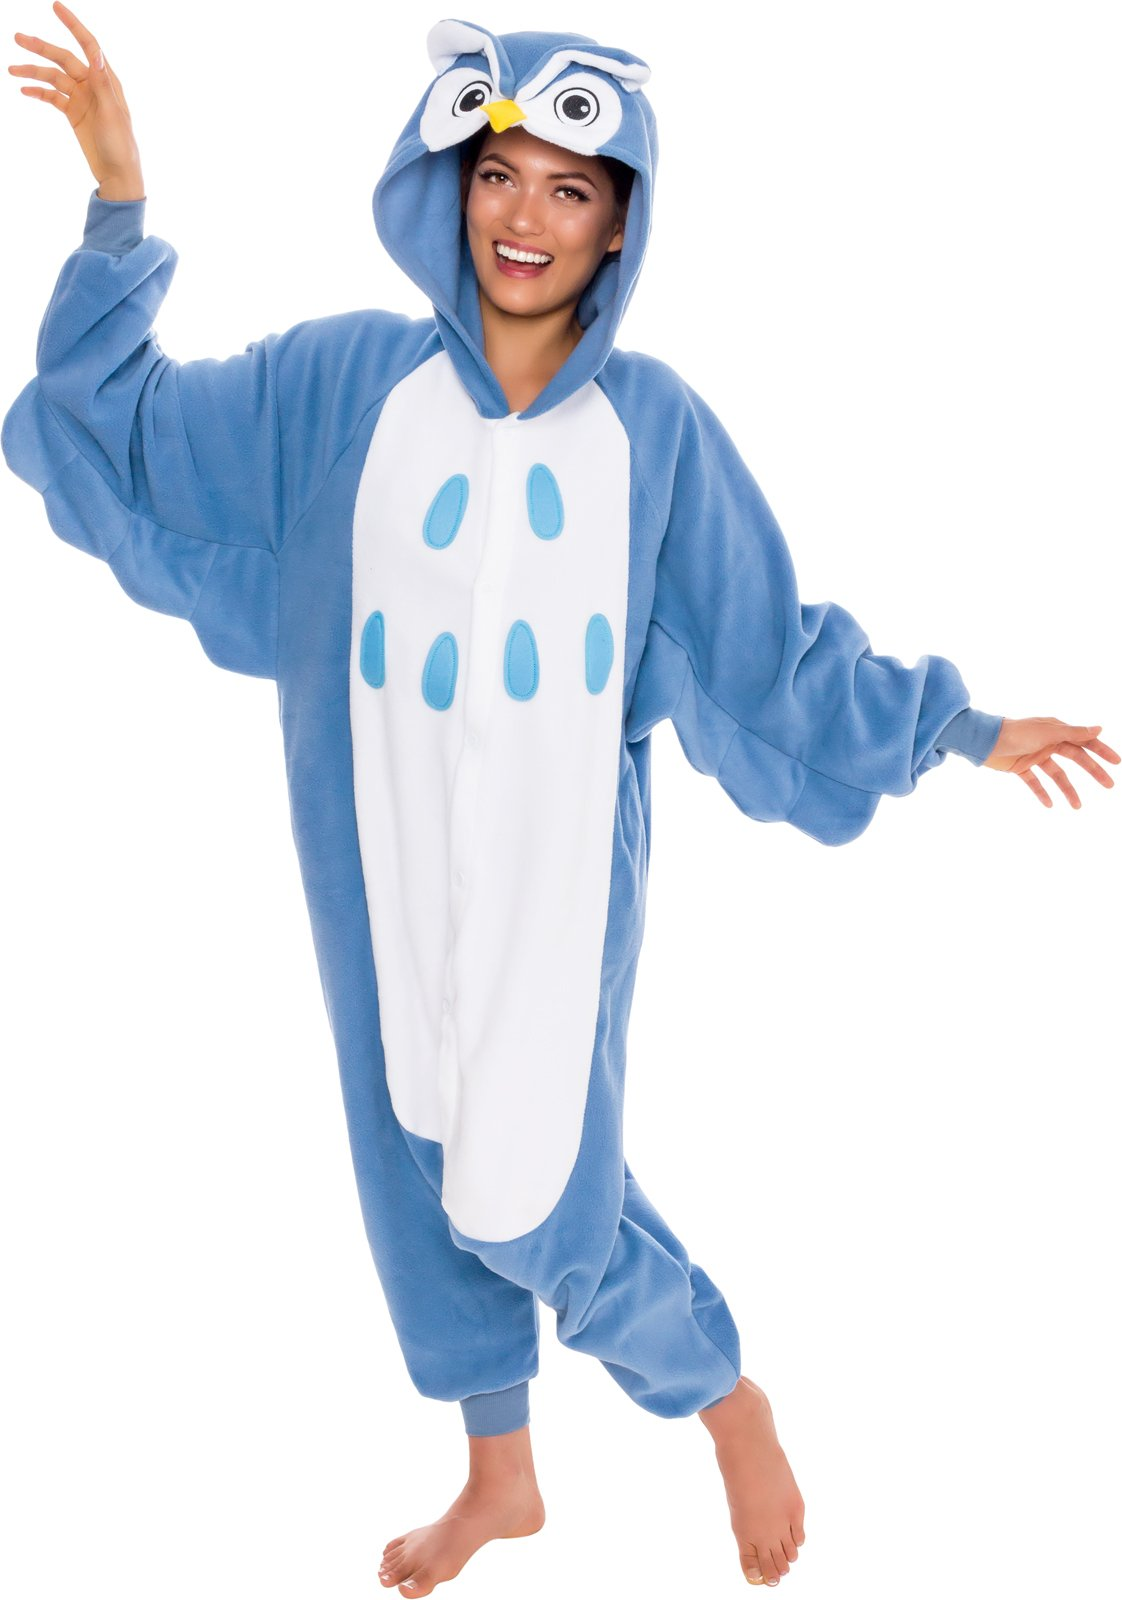 d8a11eb093 Silver Lilly Unisex Adult Pajamas - Plush One Piece Cosplay Owl Animal  Costume   Costumes   Clothing